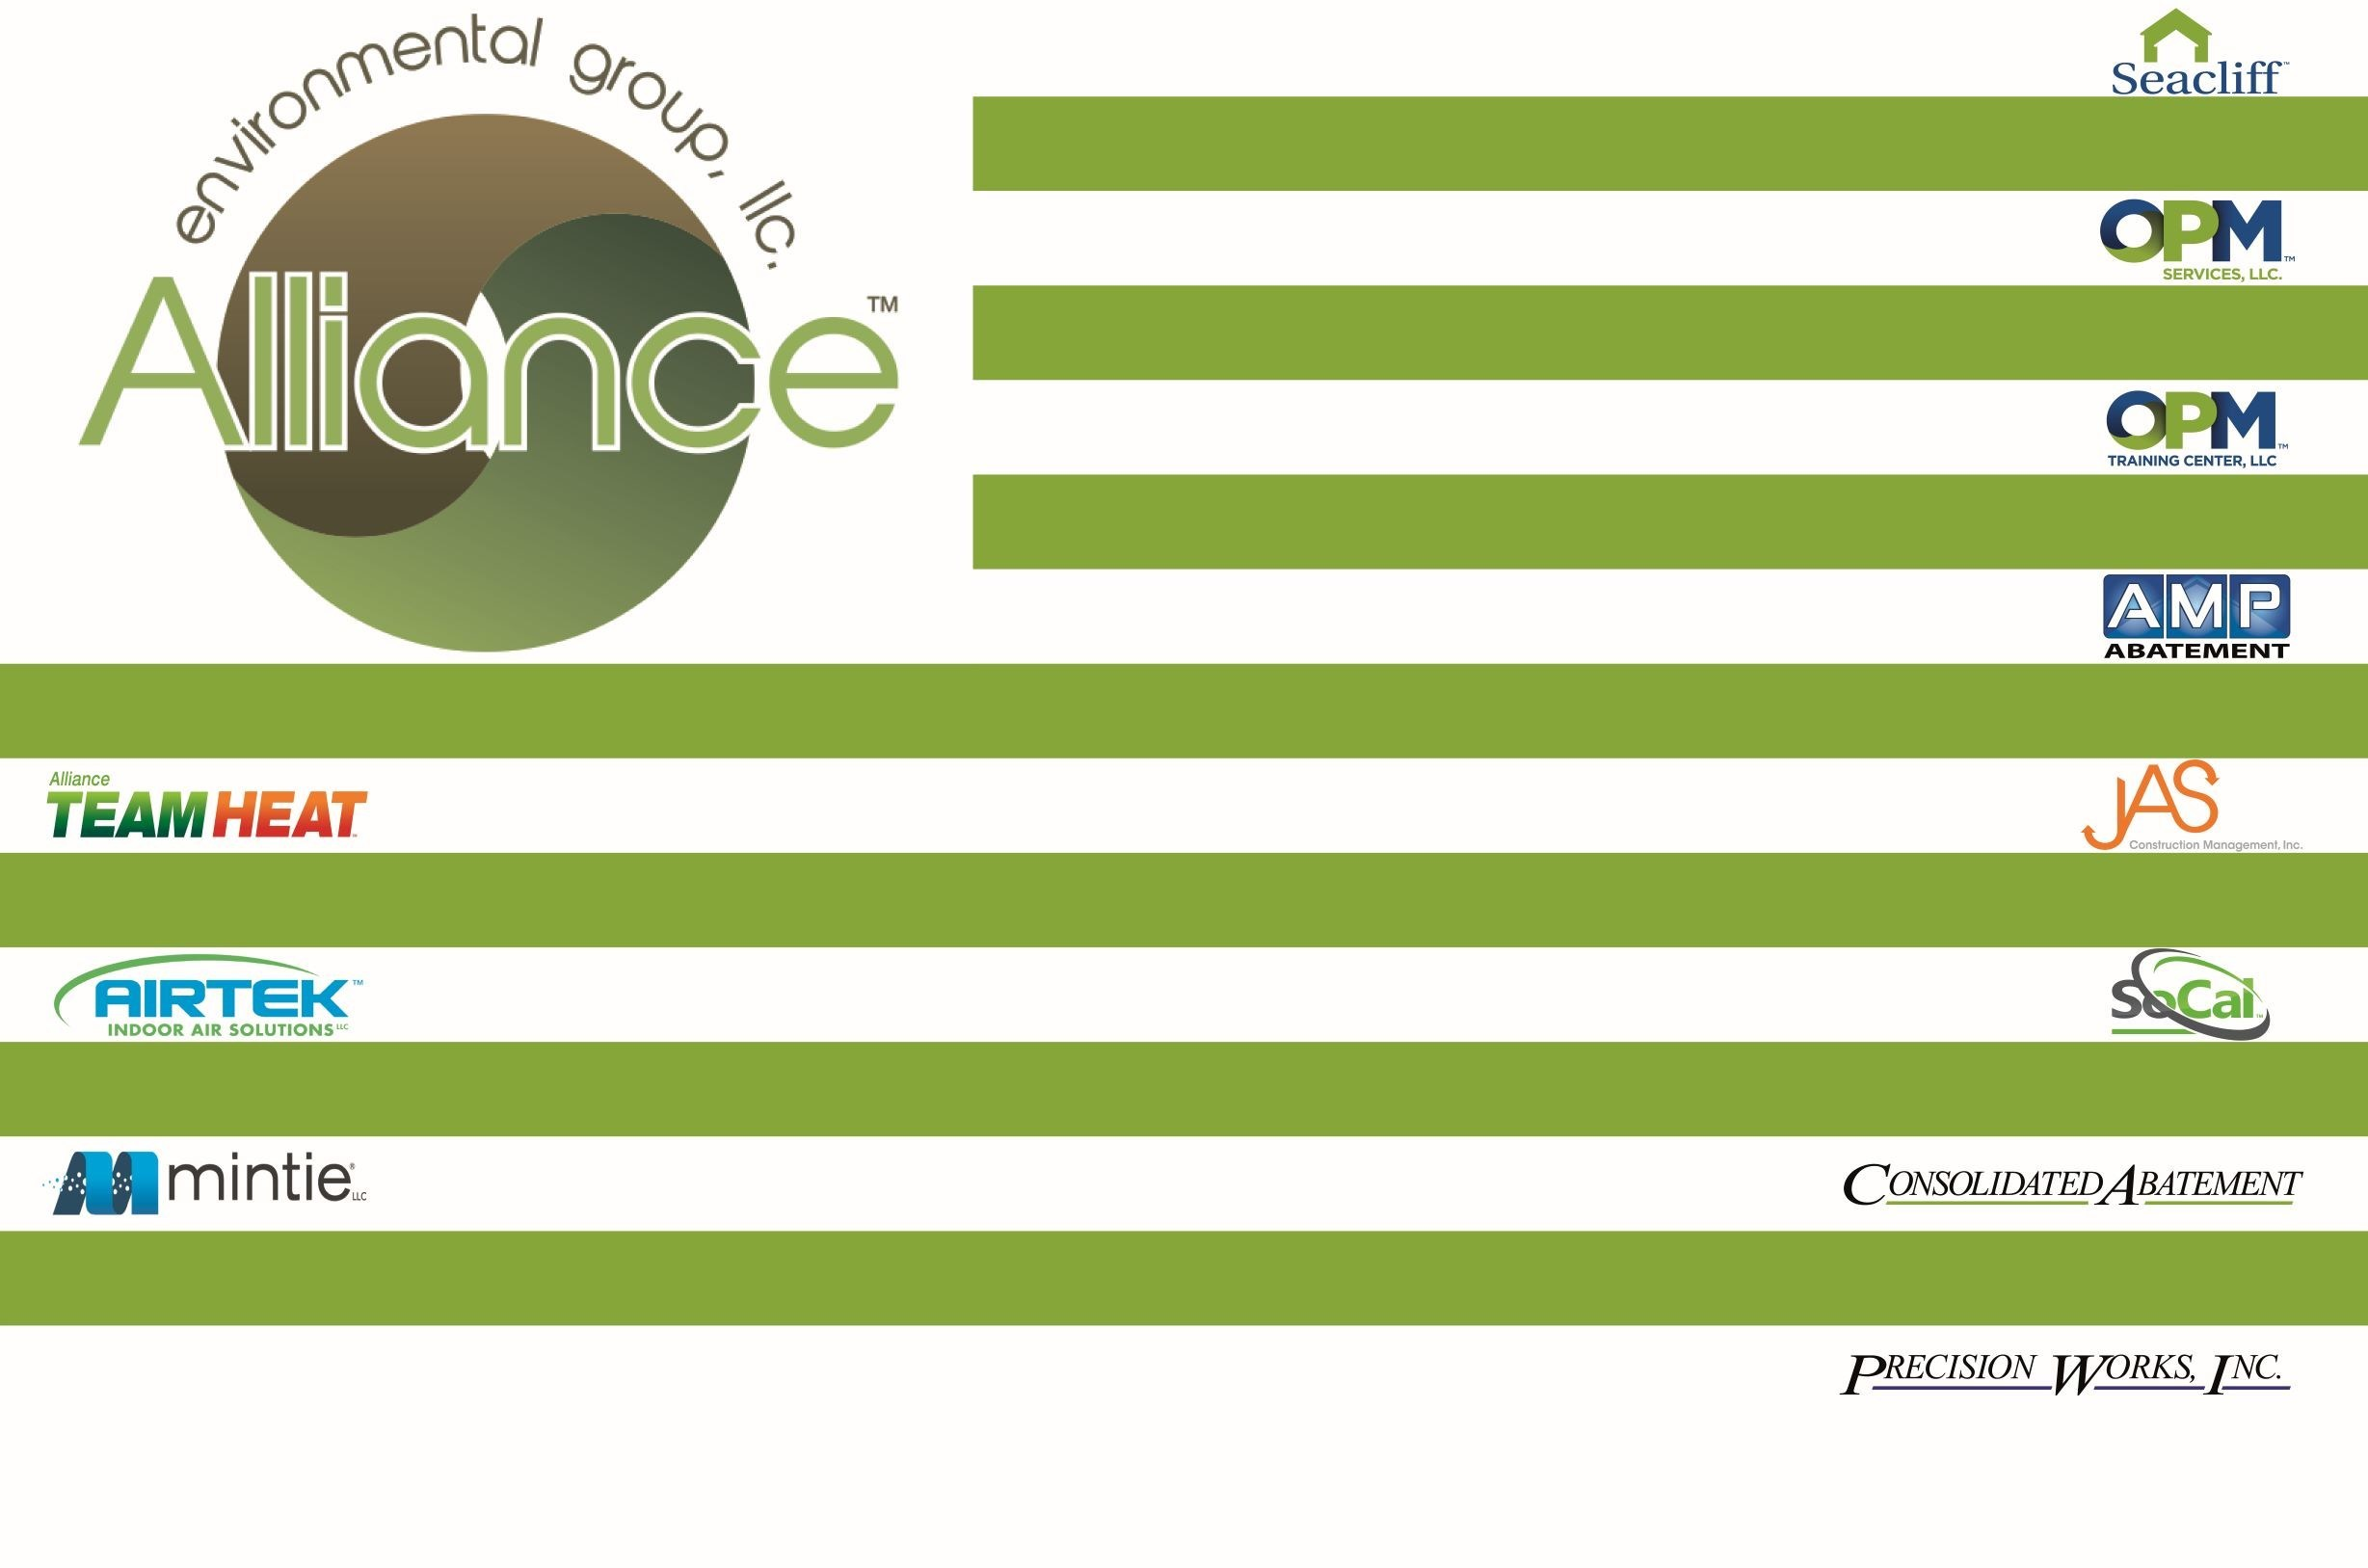 Alliance_Environmental_Group_of_Companies